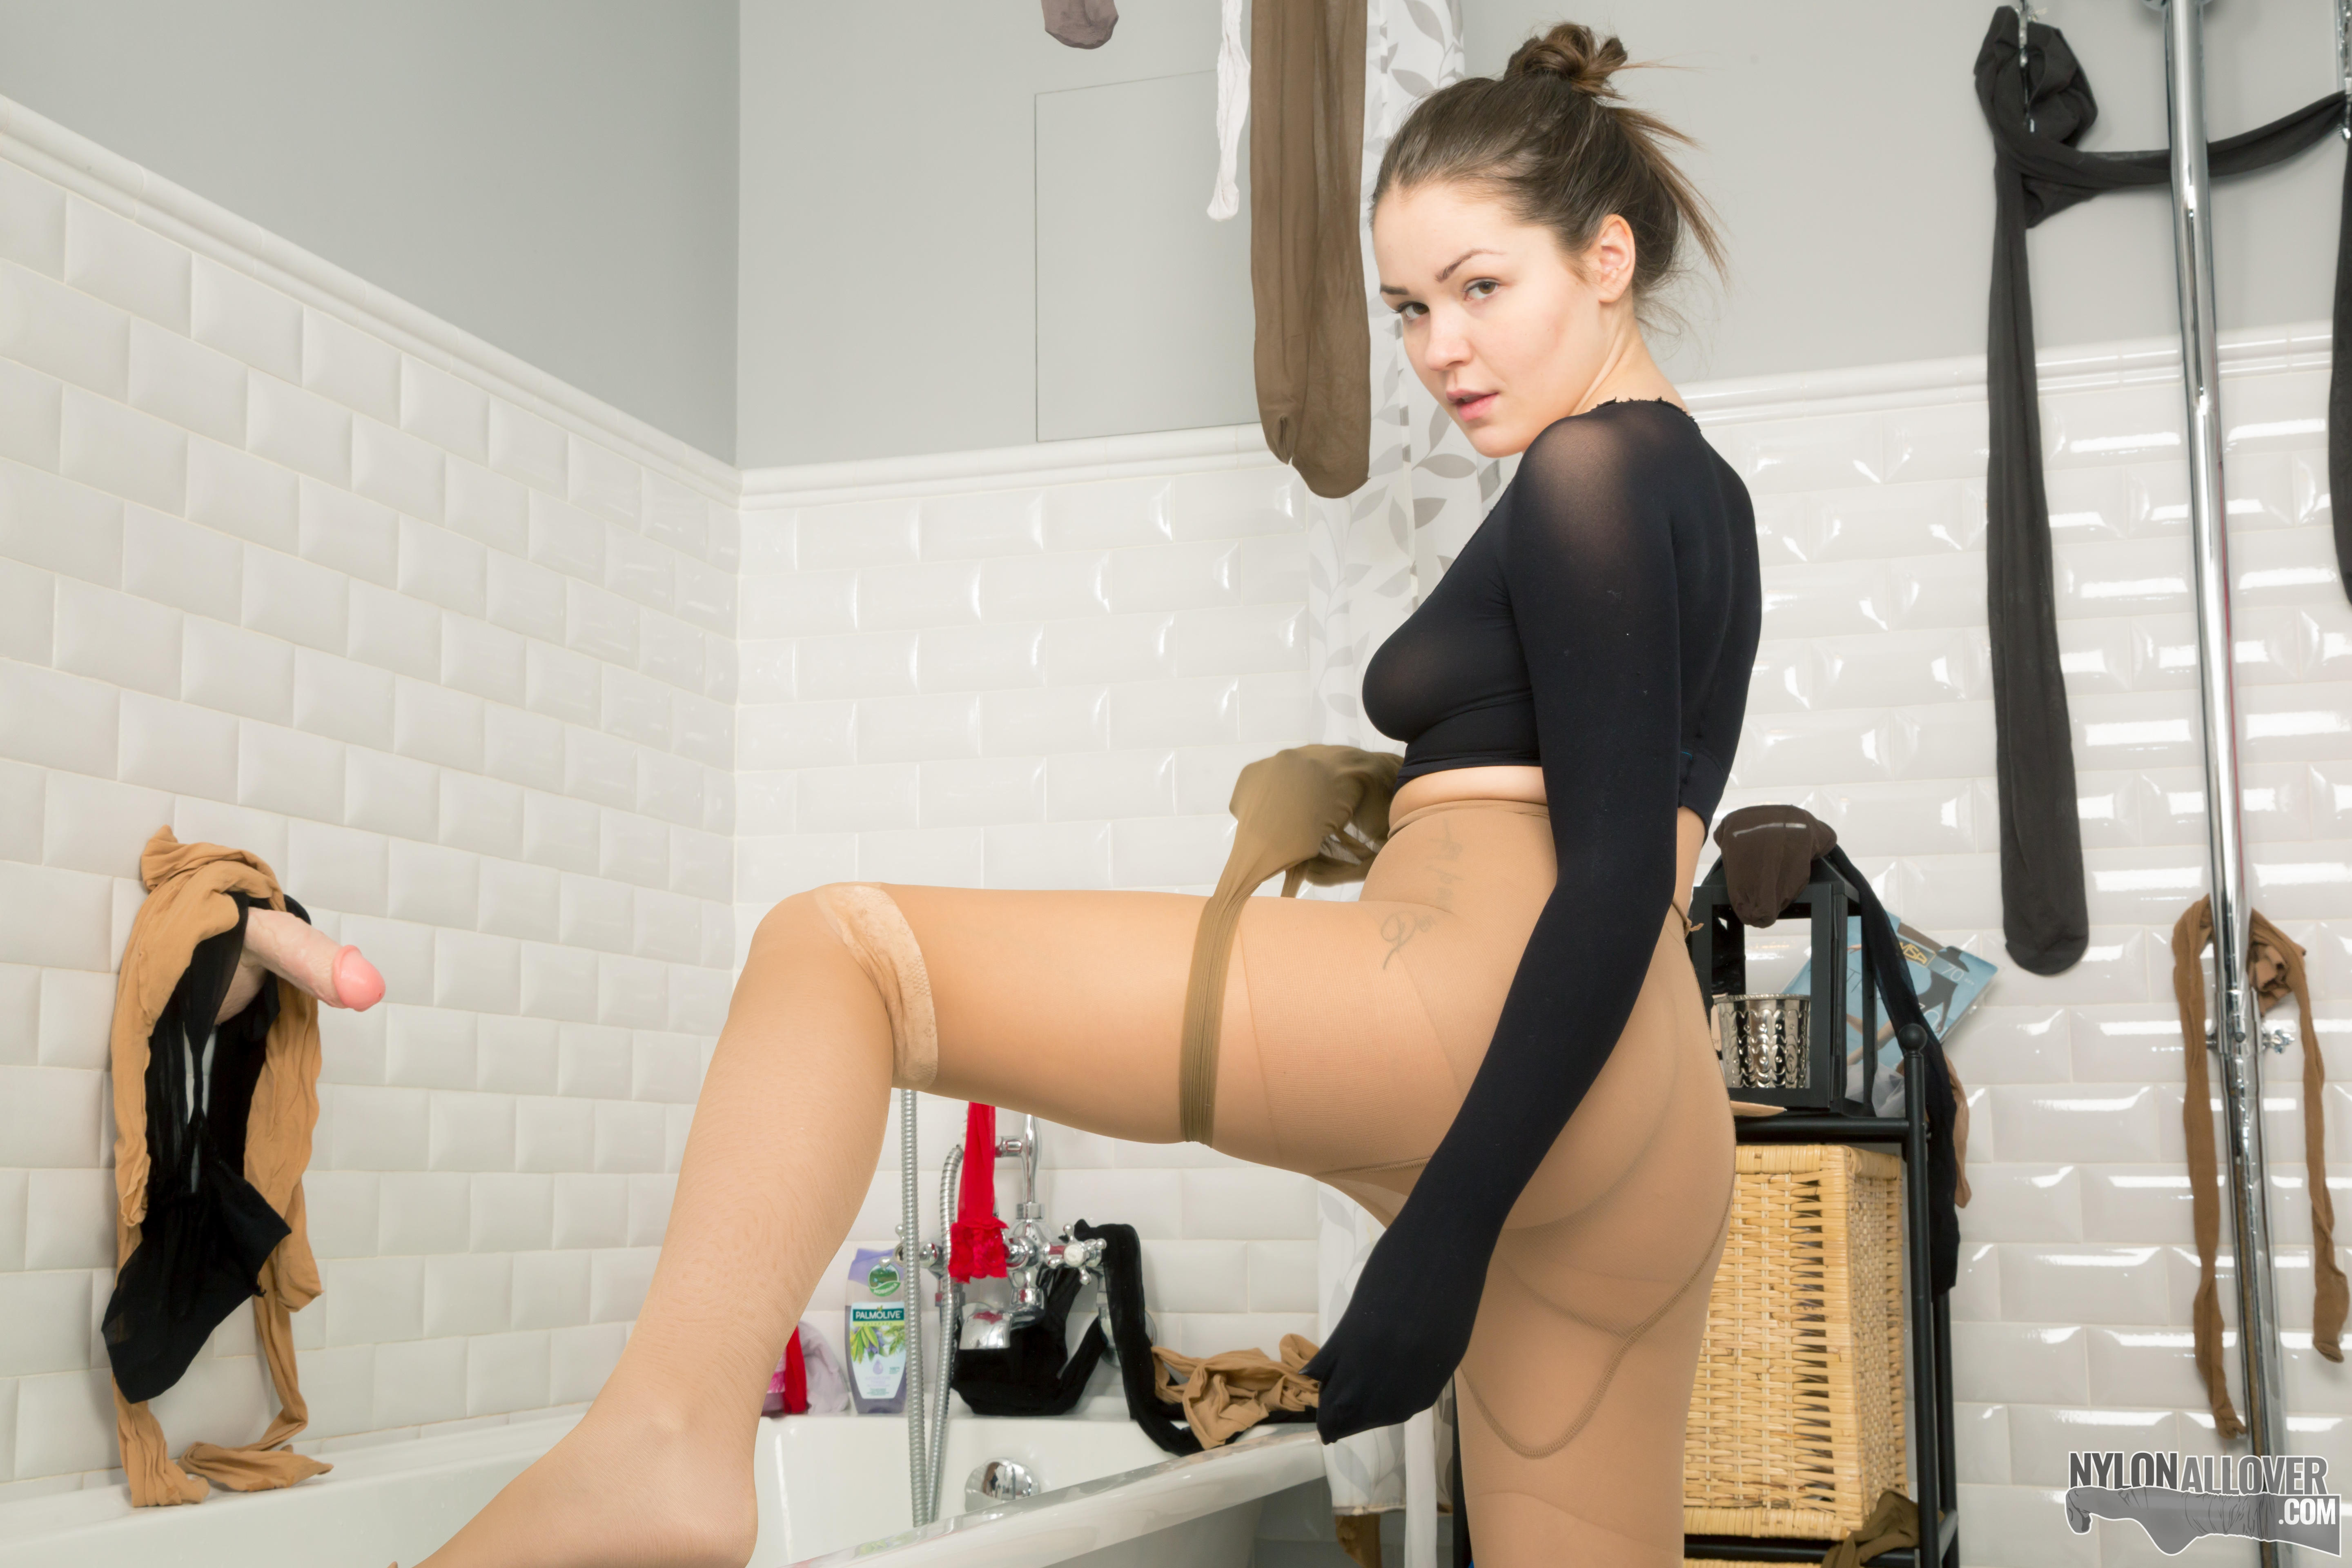 Excellent Fun with pantyhose agree